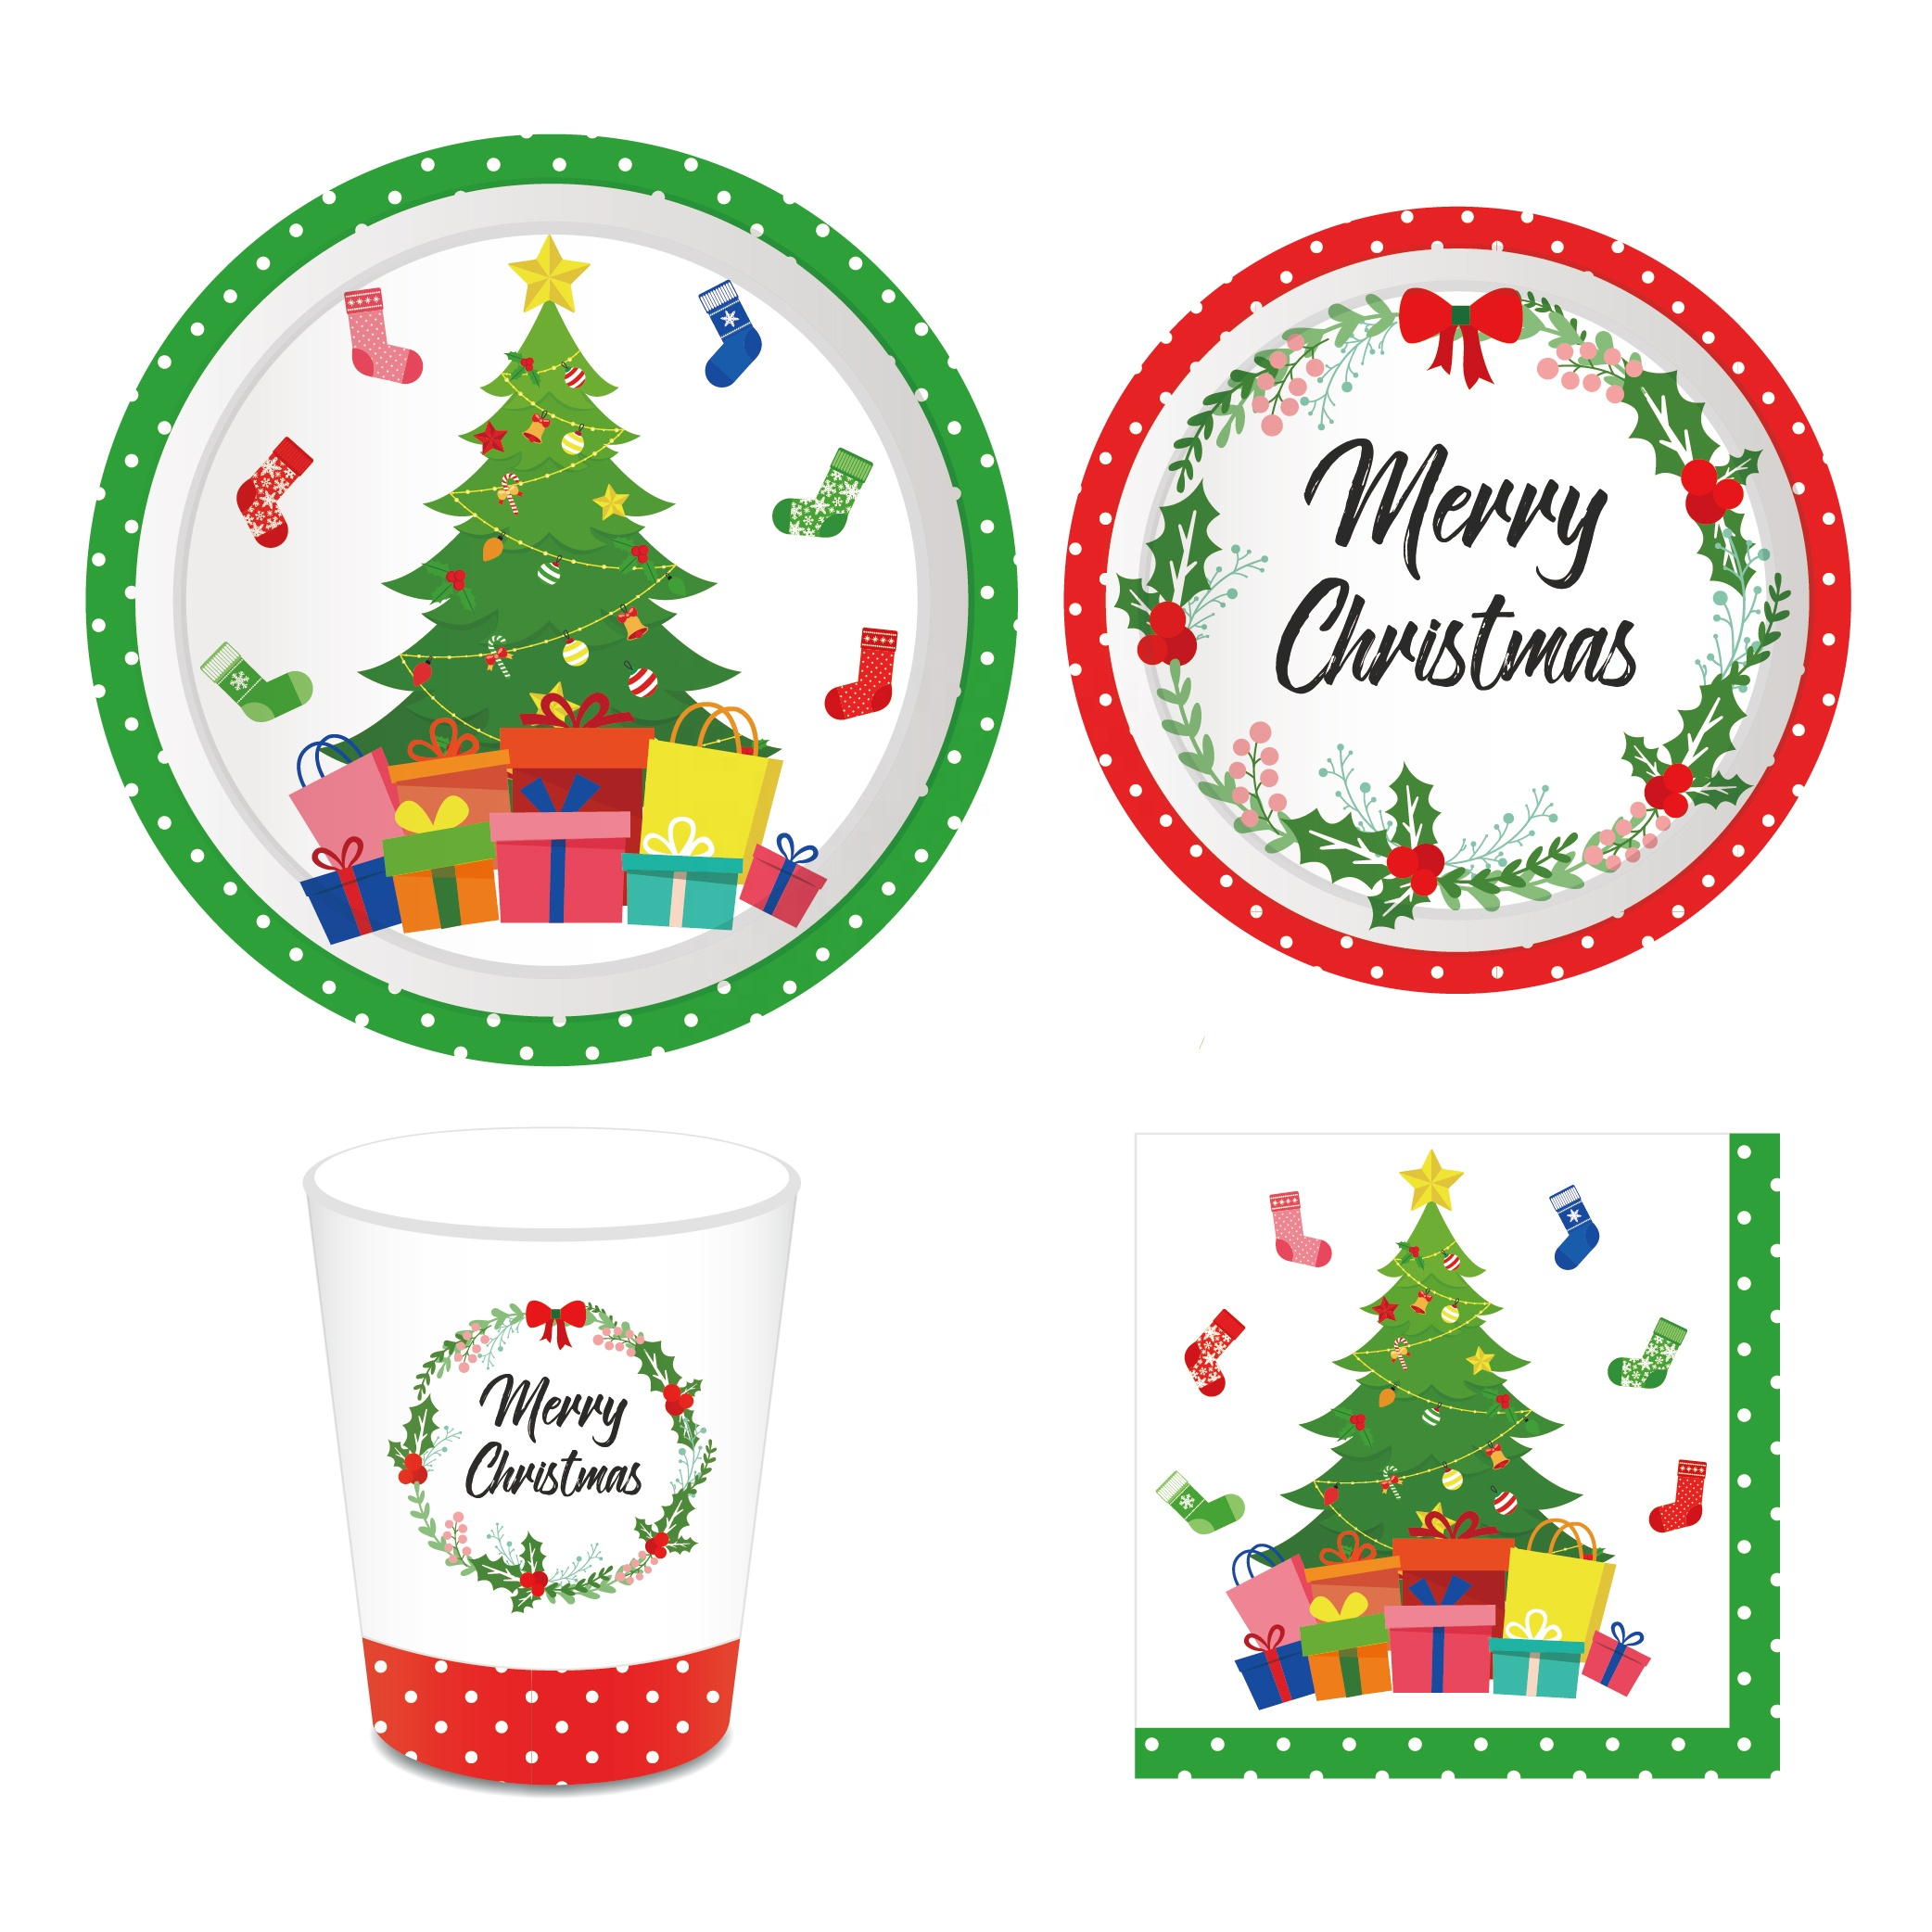 Merry Christmas Party Tableware set